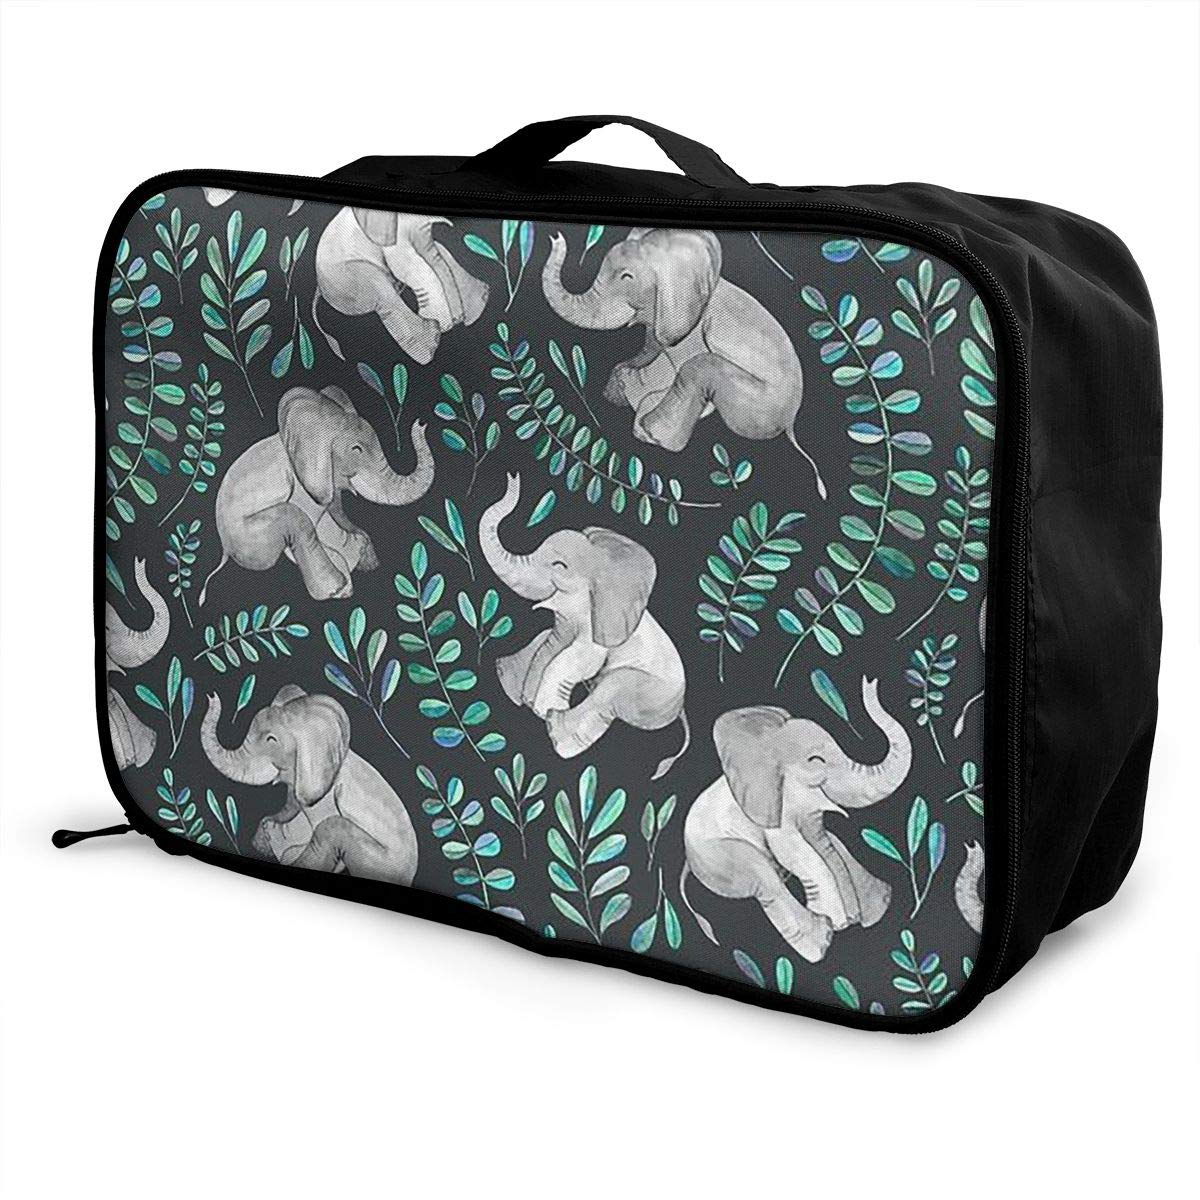 Women /& Men Foldable Travel Duffel Bag Laughing Baby Elephants Printed For Luggage Gym Sports